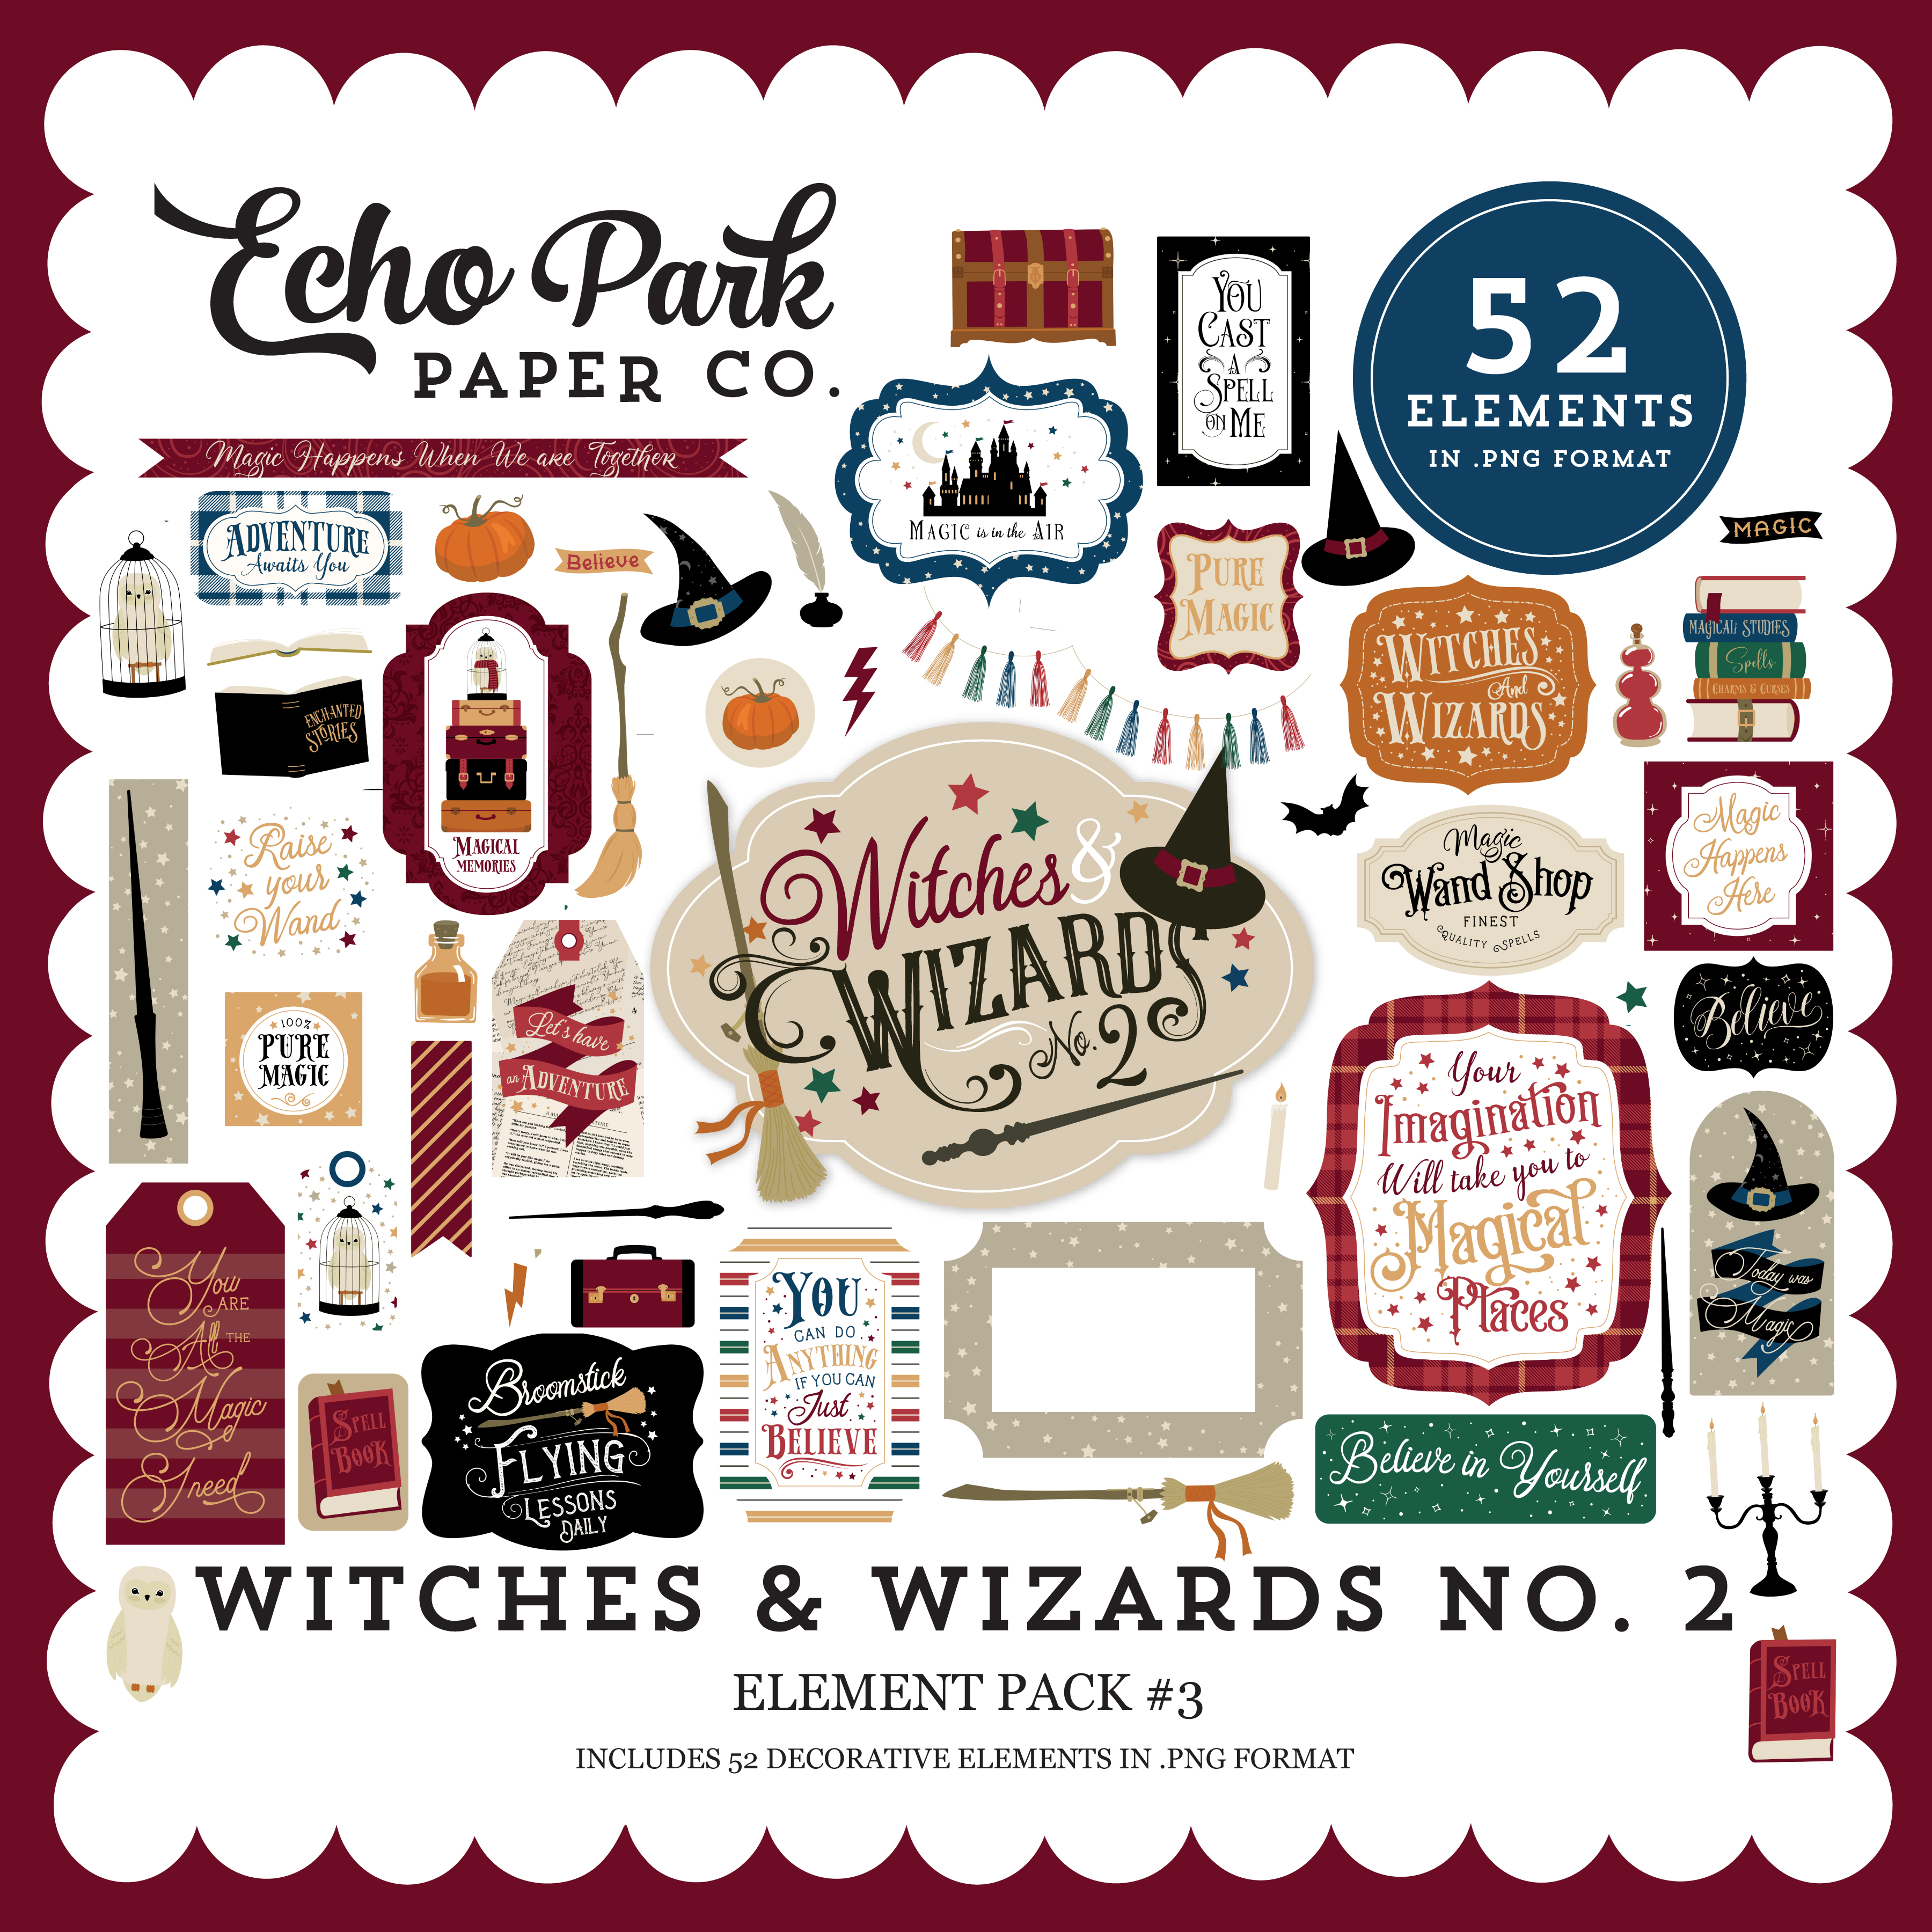 Witches & Wizards No. 2 Element Pack #3